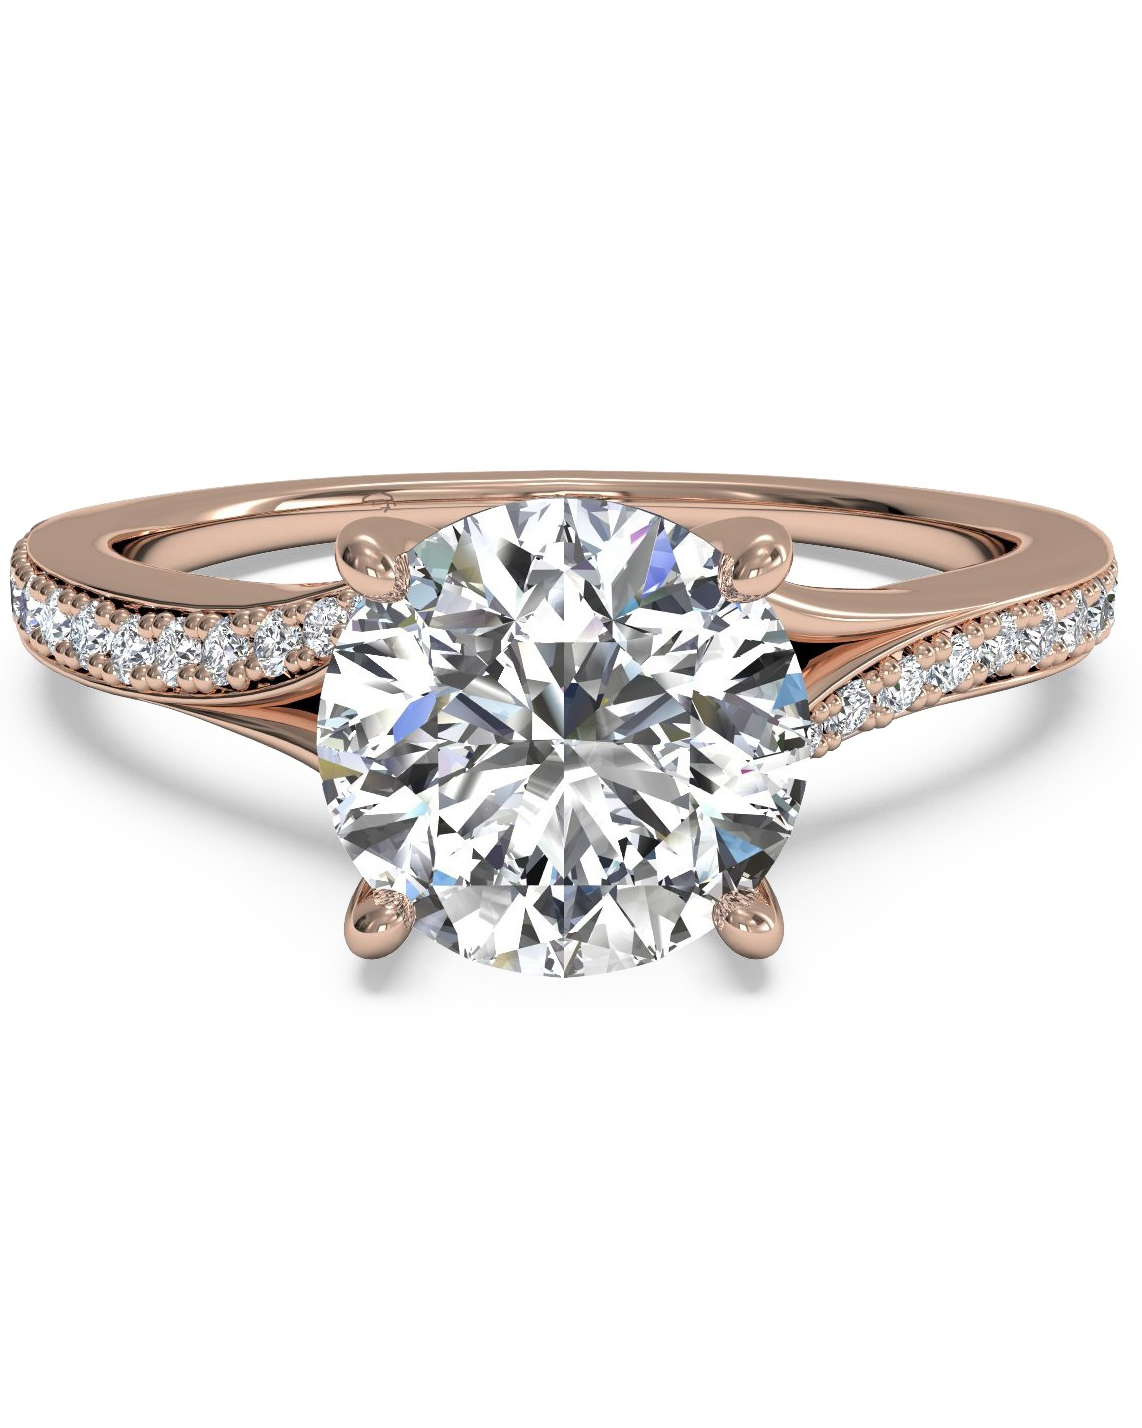 ritani-rose-gold-micropave-twisted-band-engagement-ring-0816.jpg